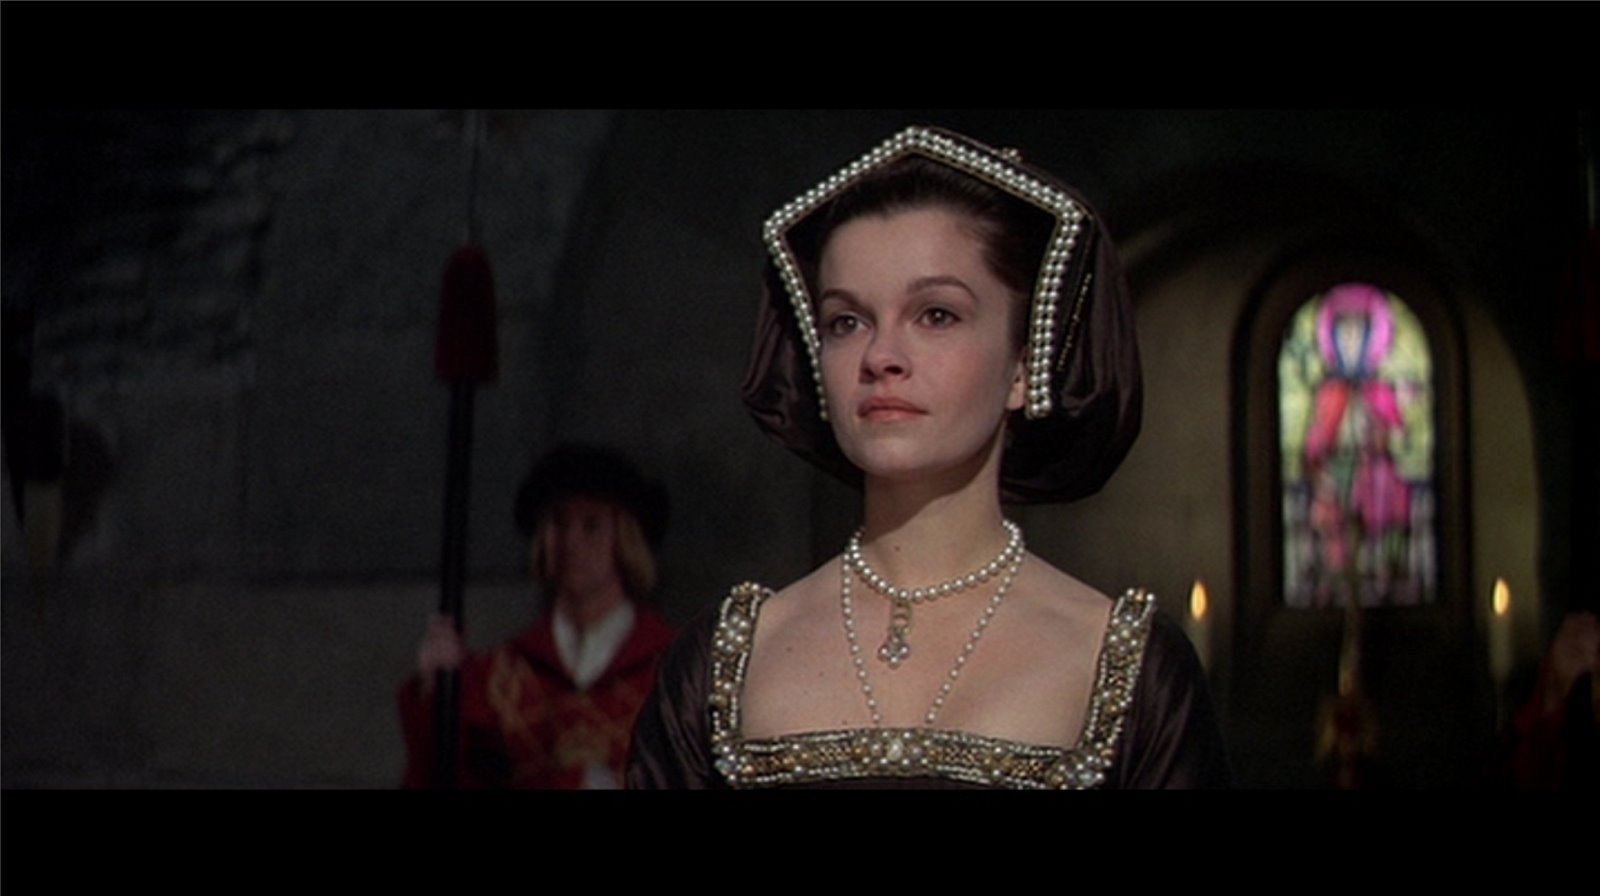 genevieve bujold screencap